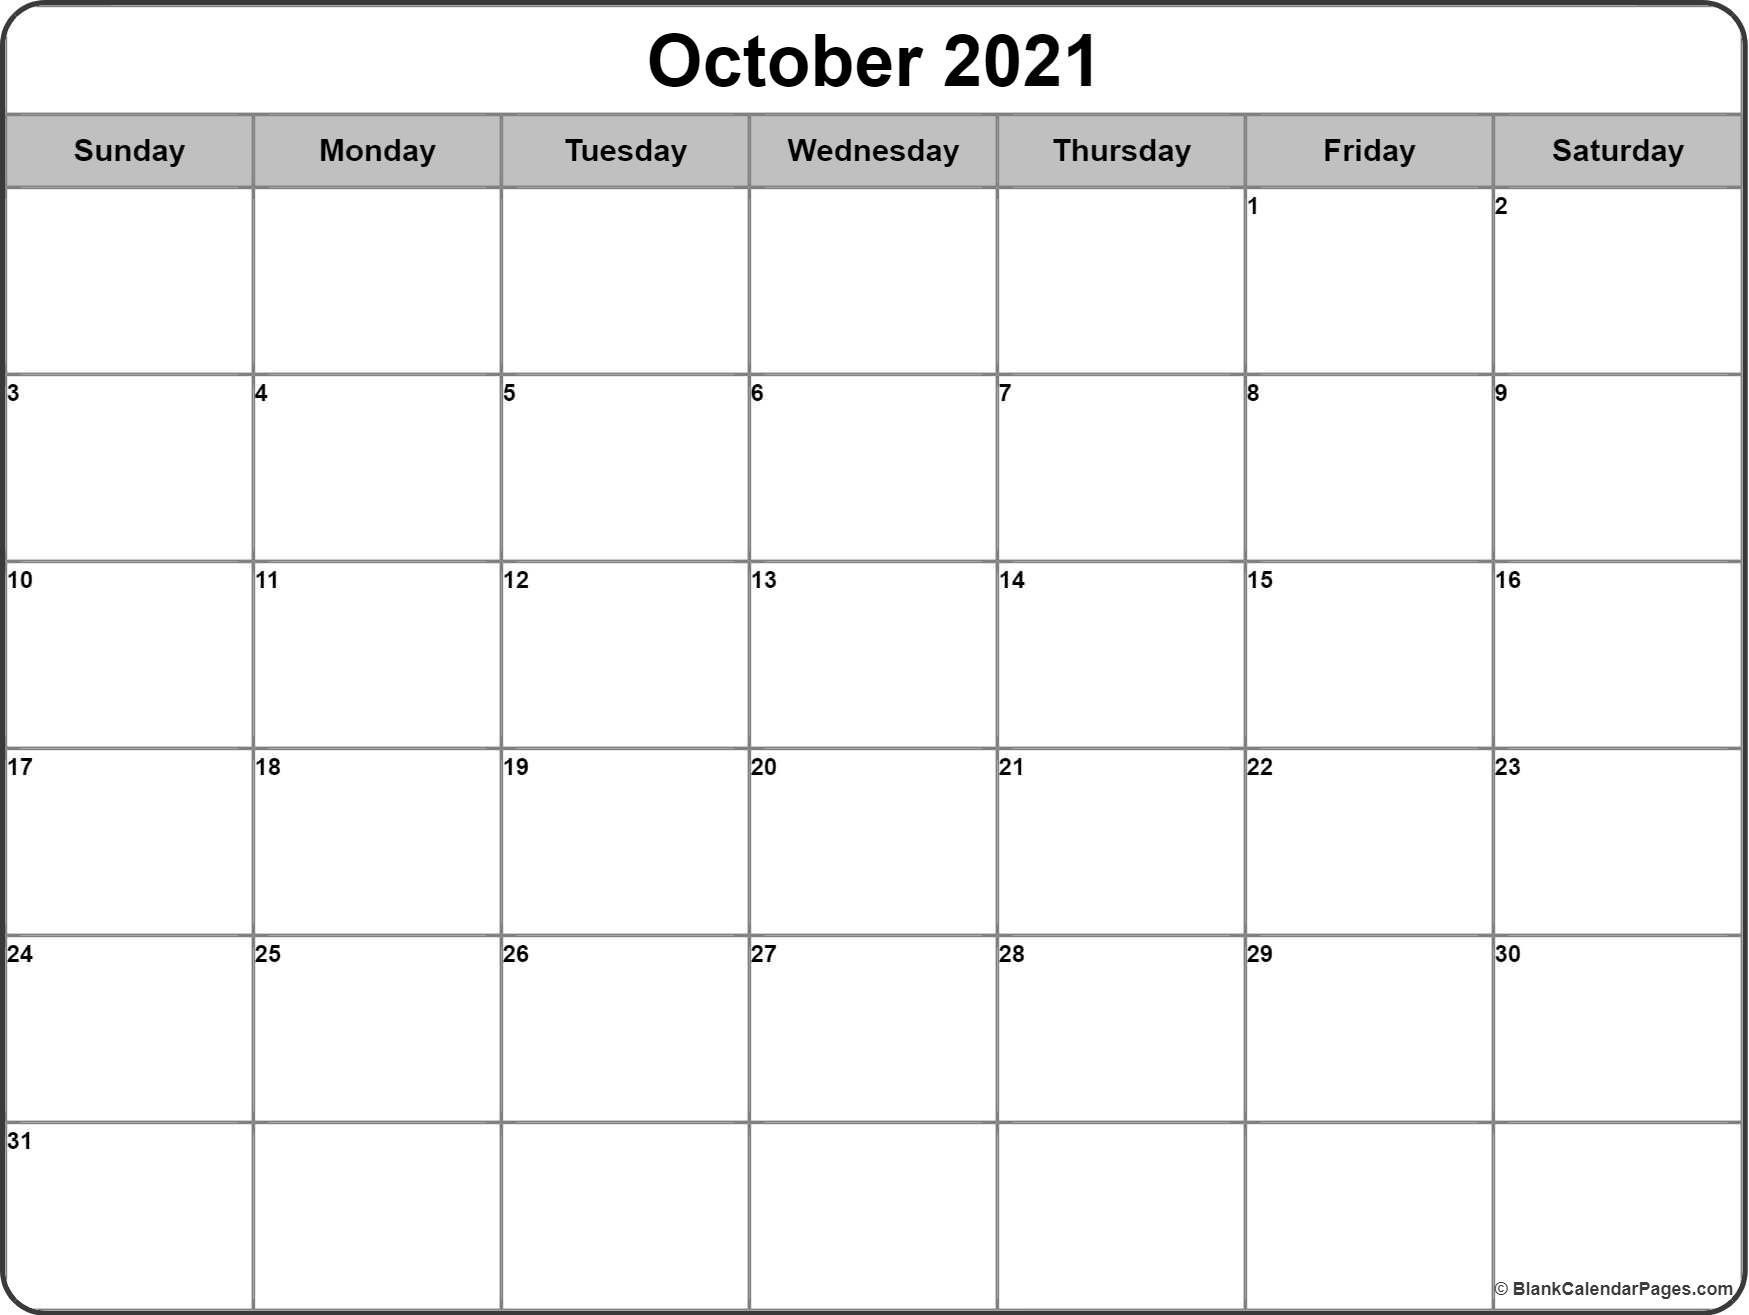 Weekly Calendar Blank Page : October calendar templates of